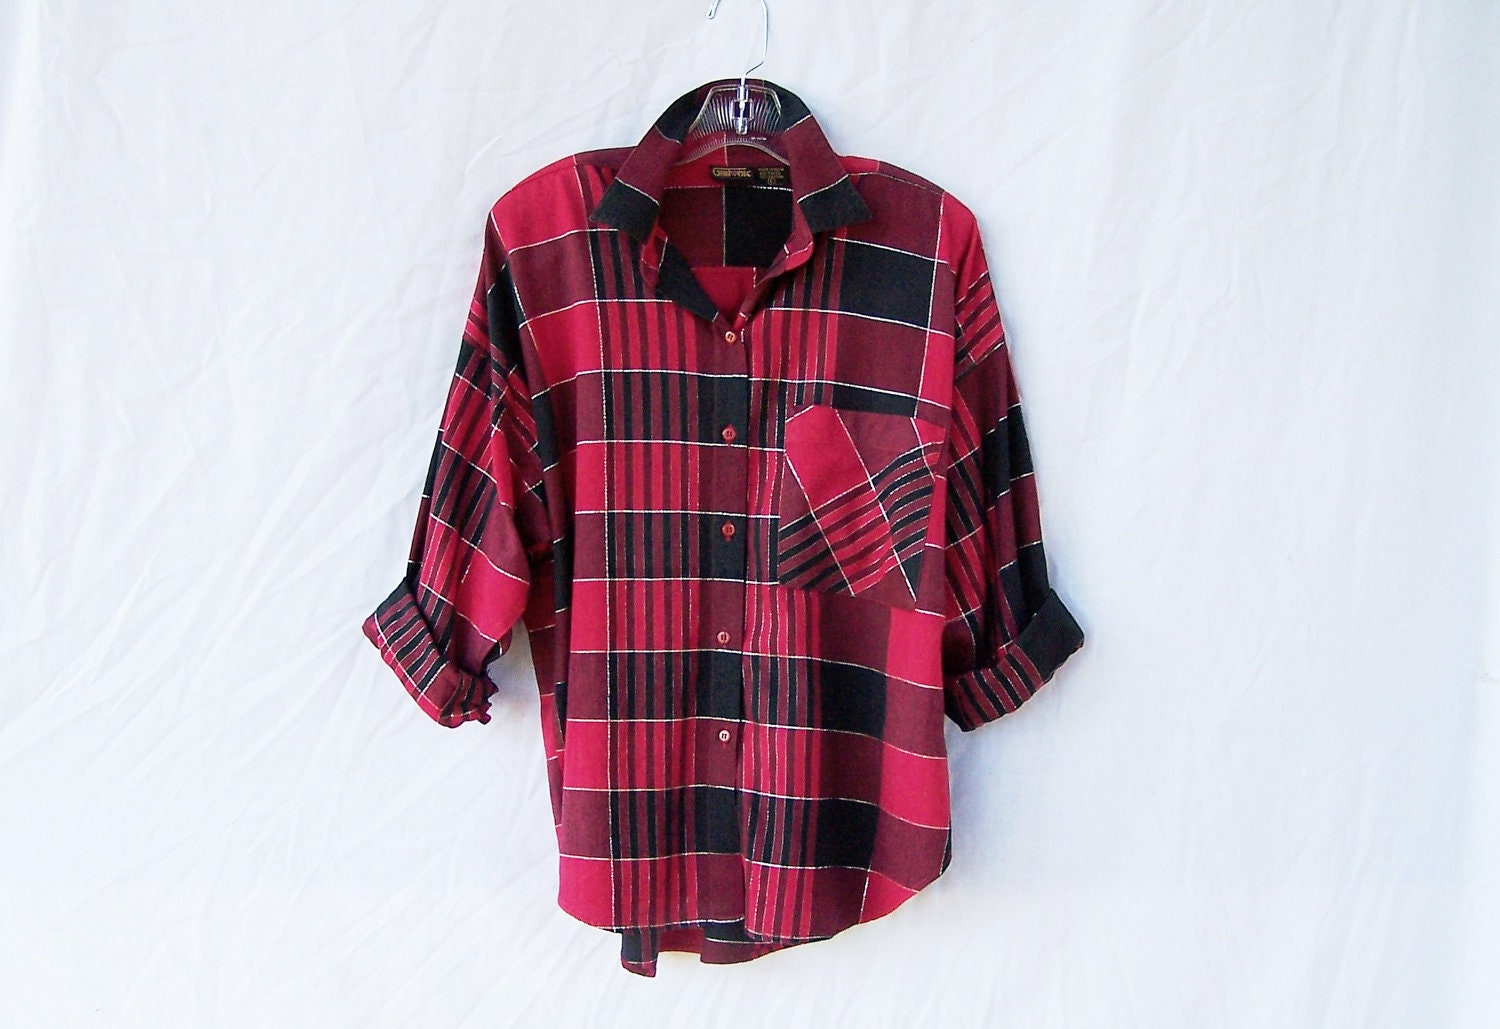 Womens 1980s red and black plaid shirt oversized by Womens red tartan plaid shirt